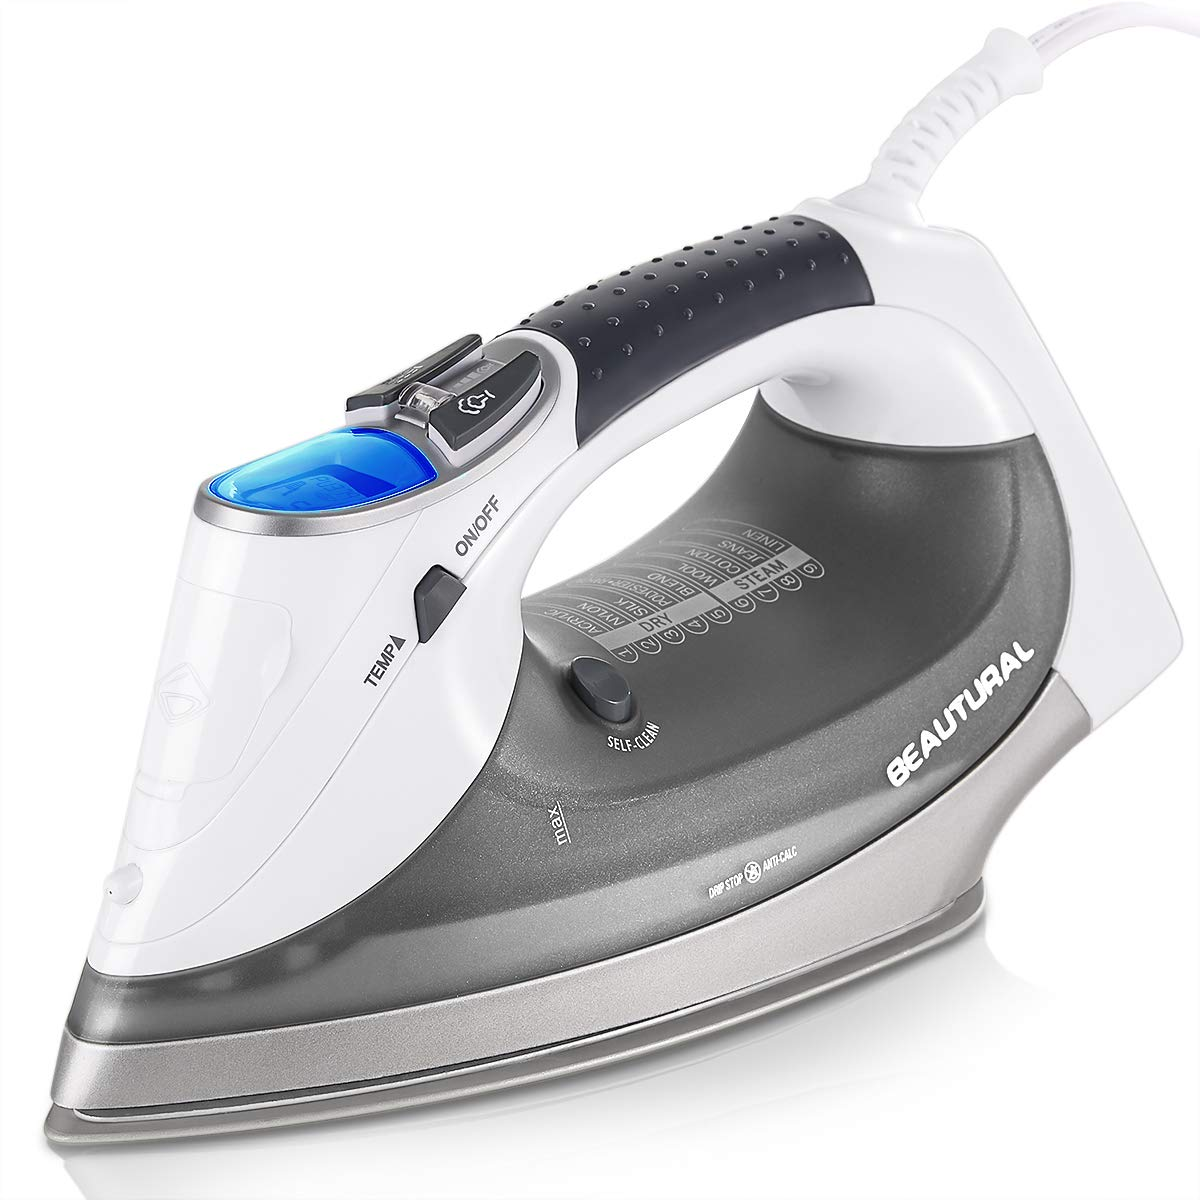 Beautural 1800-Watt Steam Iron with Digital LCD Screen, Double Ceramic Coated Soleplate, 3-Way Auto-Off, 100% Safe, 9 Preset Temperature and Steam Settings for Variable Fabric